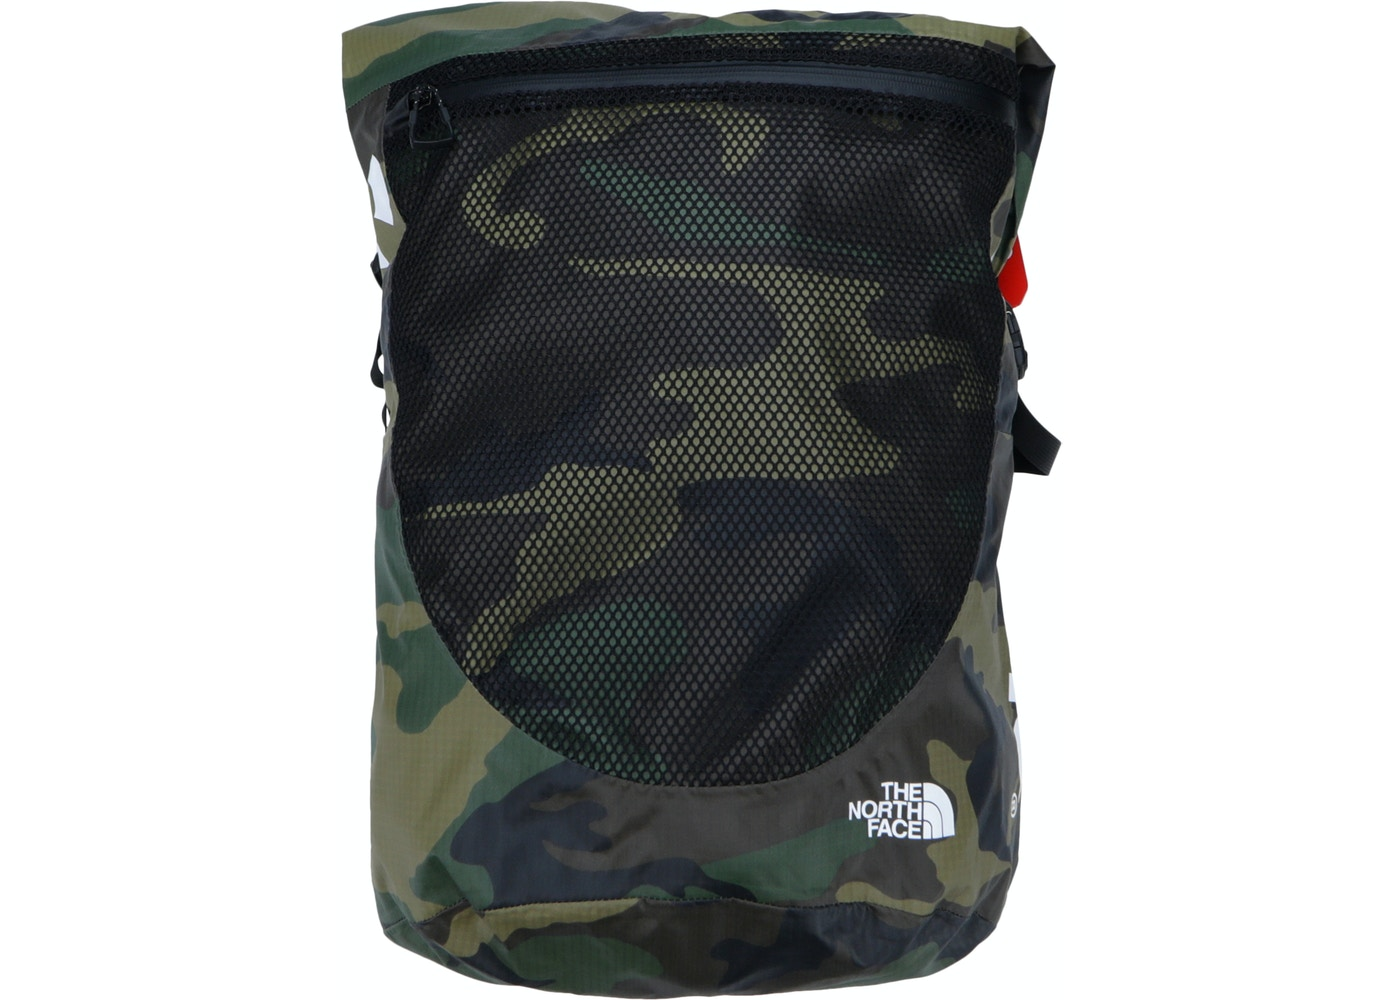 07defe689 Supreme The North Face Waterproof Backpack Woodland Camo